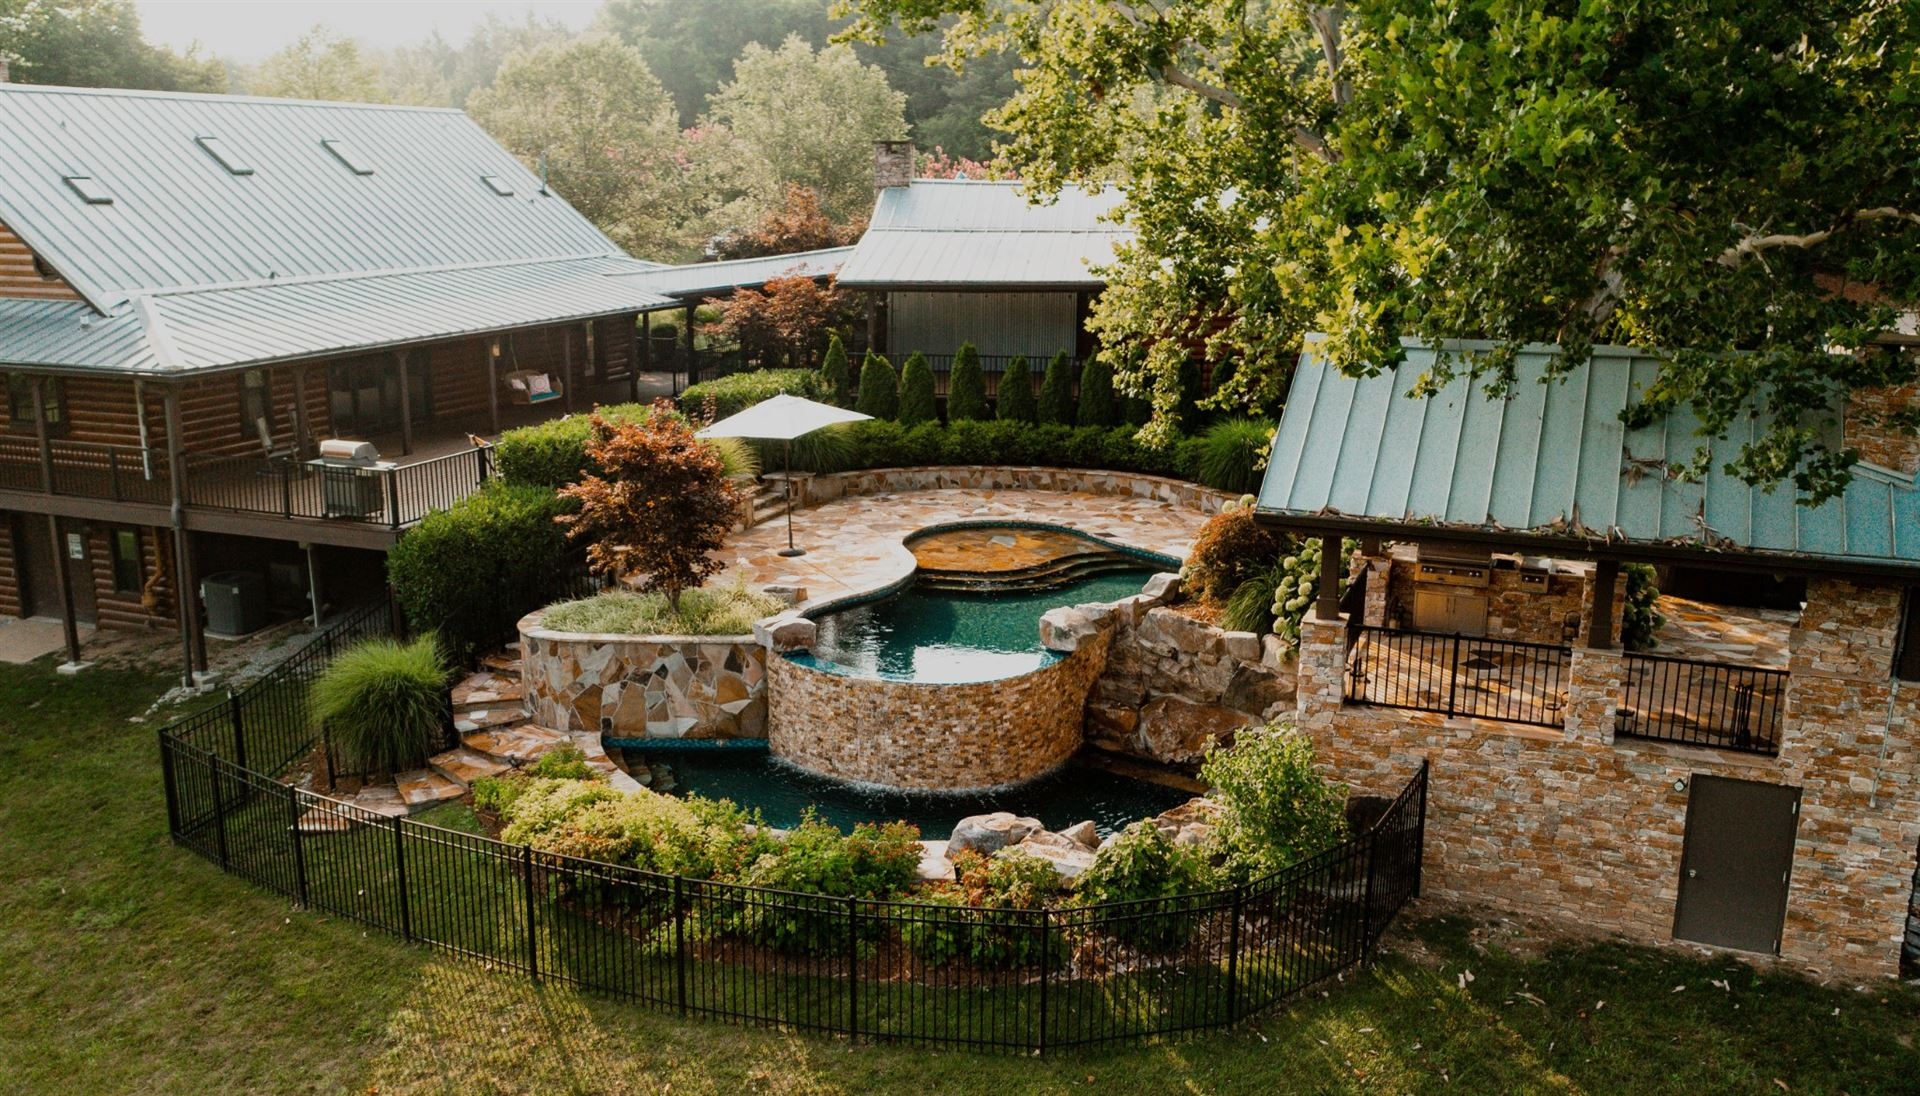 Photo of 4465 S Carothers Rd, Franklin, TN 37064 (MLS # 2275583)